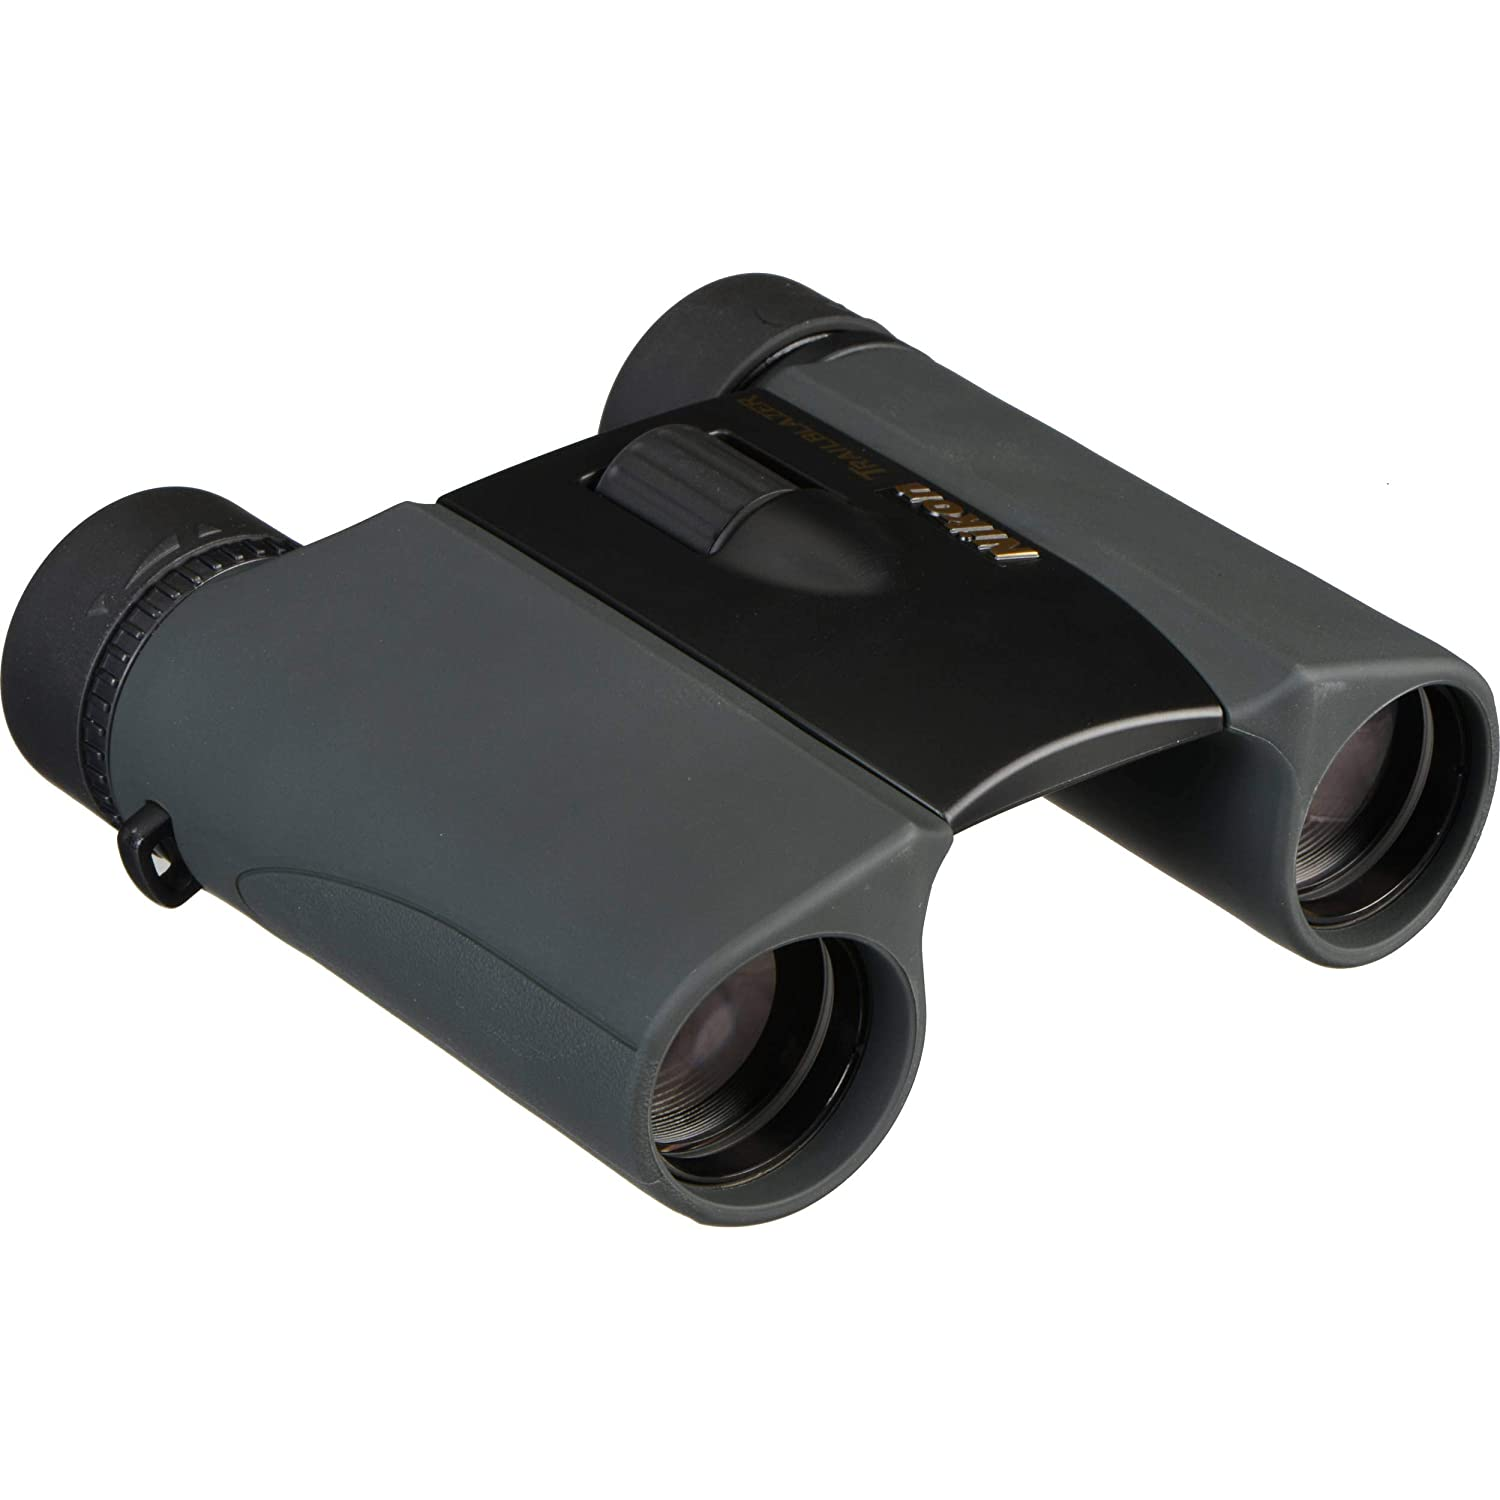 4. Nikon Trailblazer ATB Waterproof  Binoculars